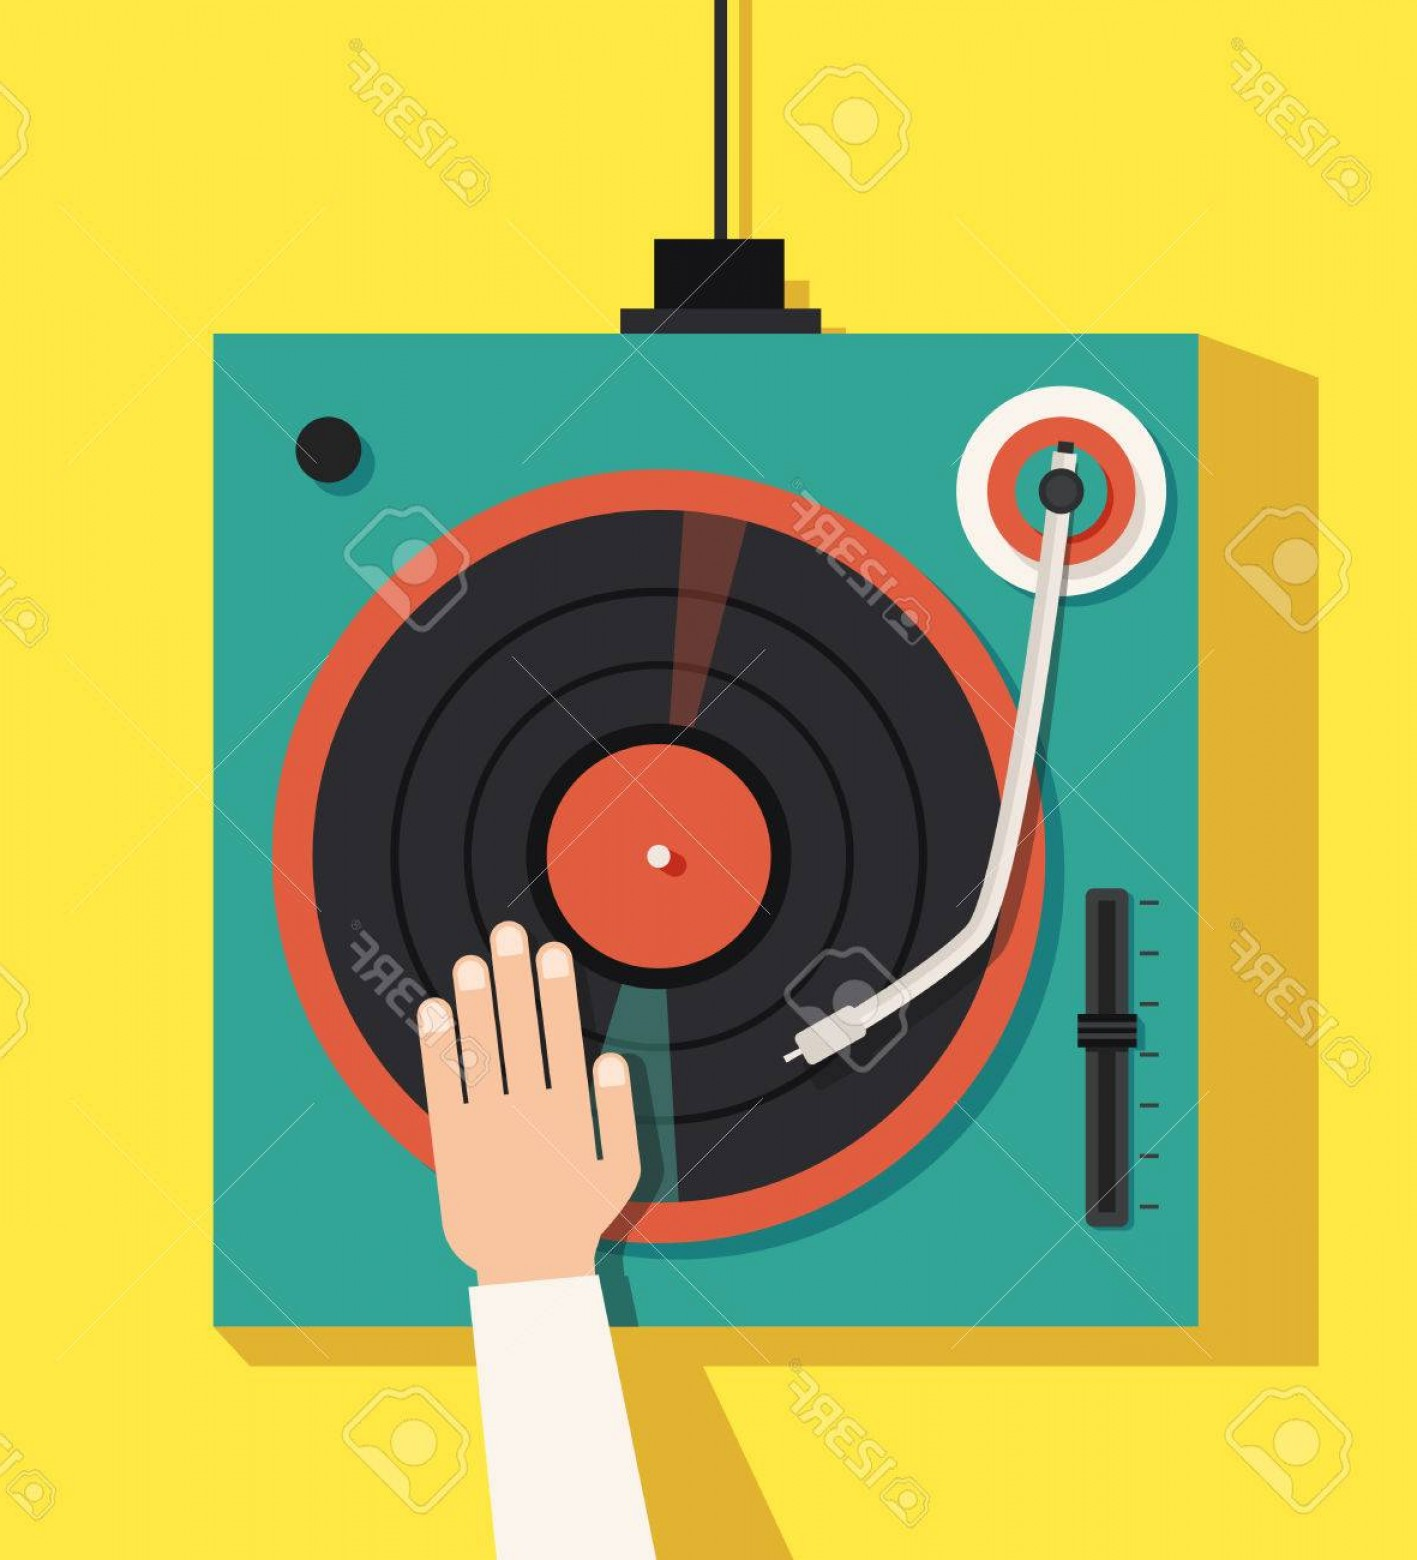 Vector DjDecks: Photostock Vector Turntable With Dj Hands Vector Flat Illustration Playing Mixing Music On Vinyl Turntable Equipment D